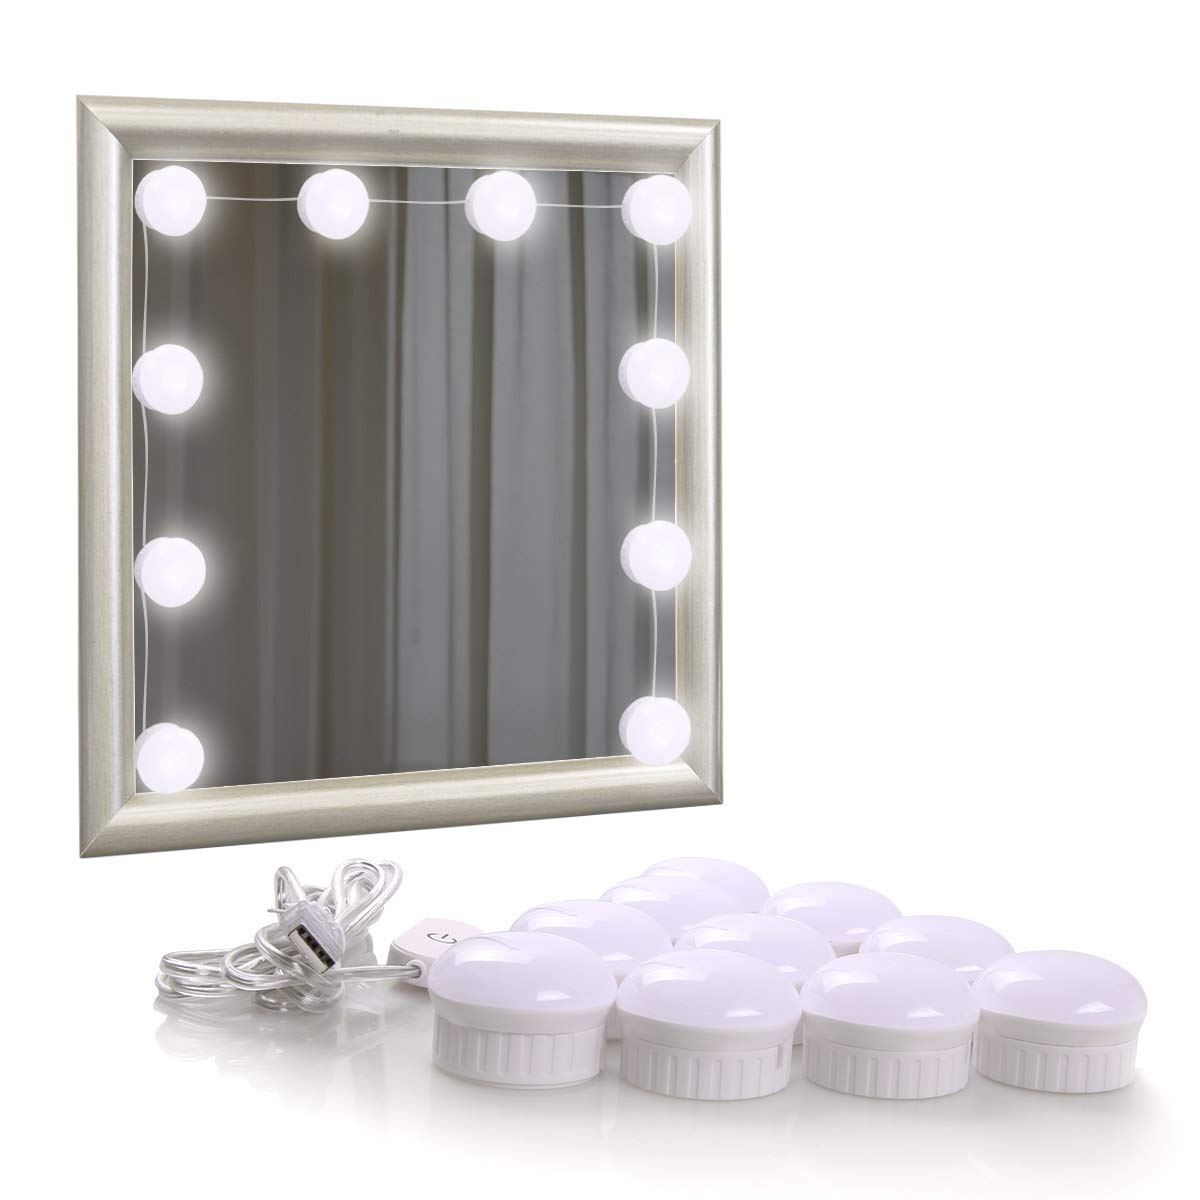 Hollywood Style LED Vanity Mirror Lights Kit for Makeup, 10 Dimmable Light Bulbs, USB Powered Lighting Fixture Strip for Bathroom Vanity Lighting/Dressing Room (Mirror Not Include)